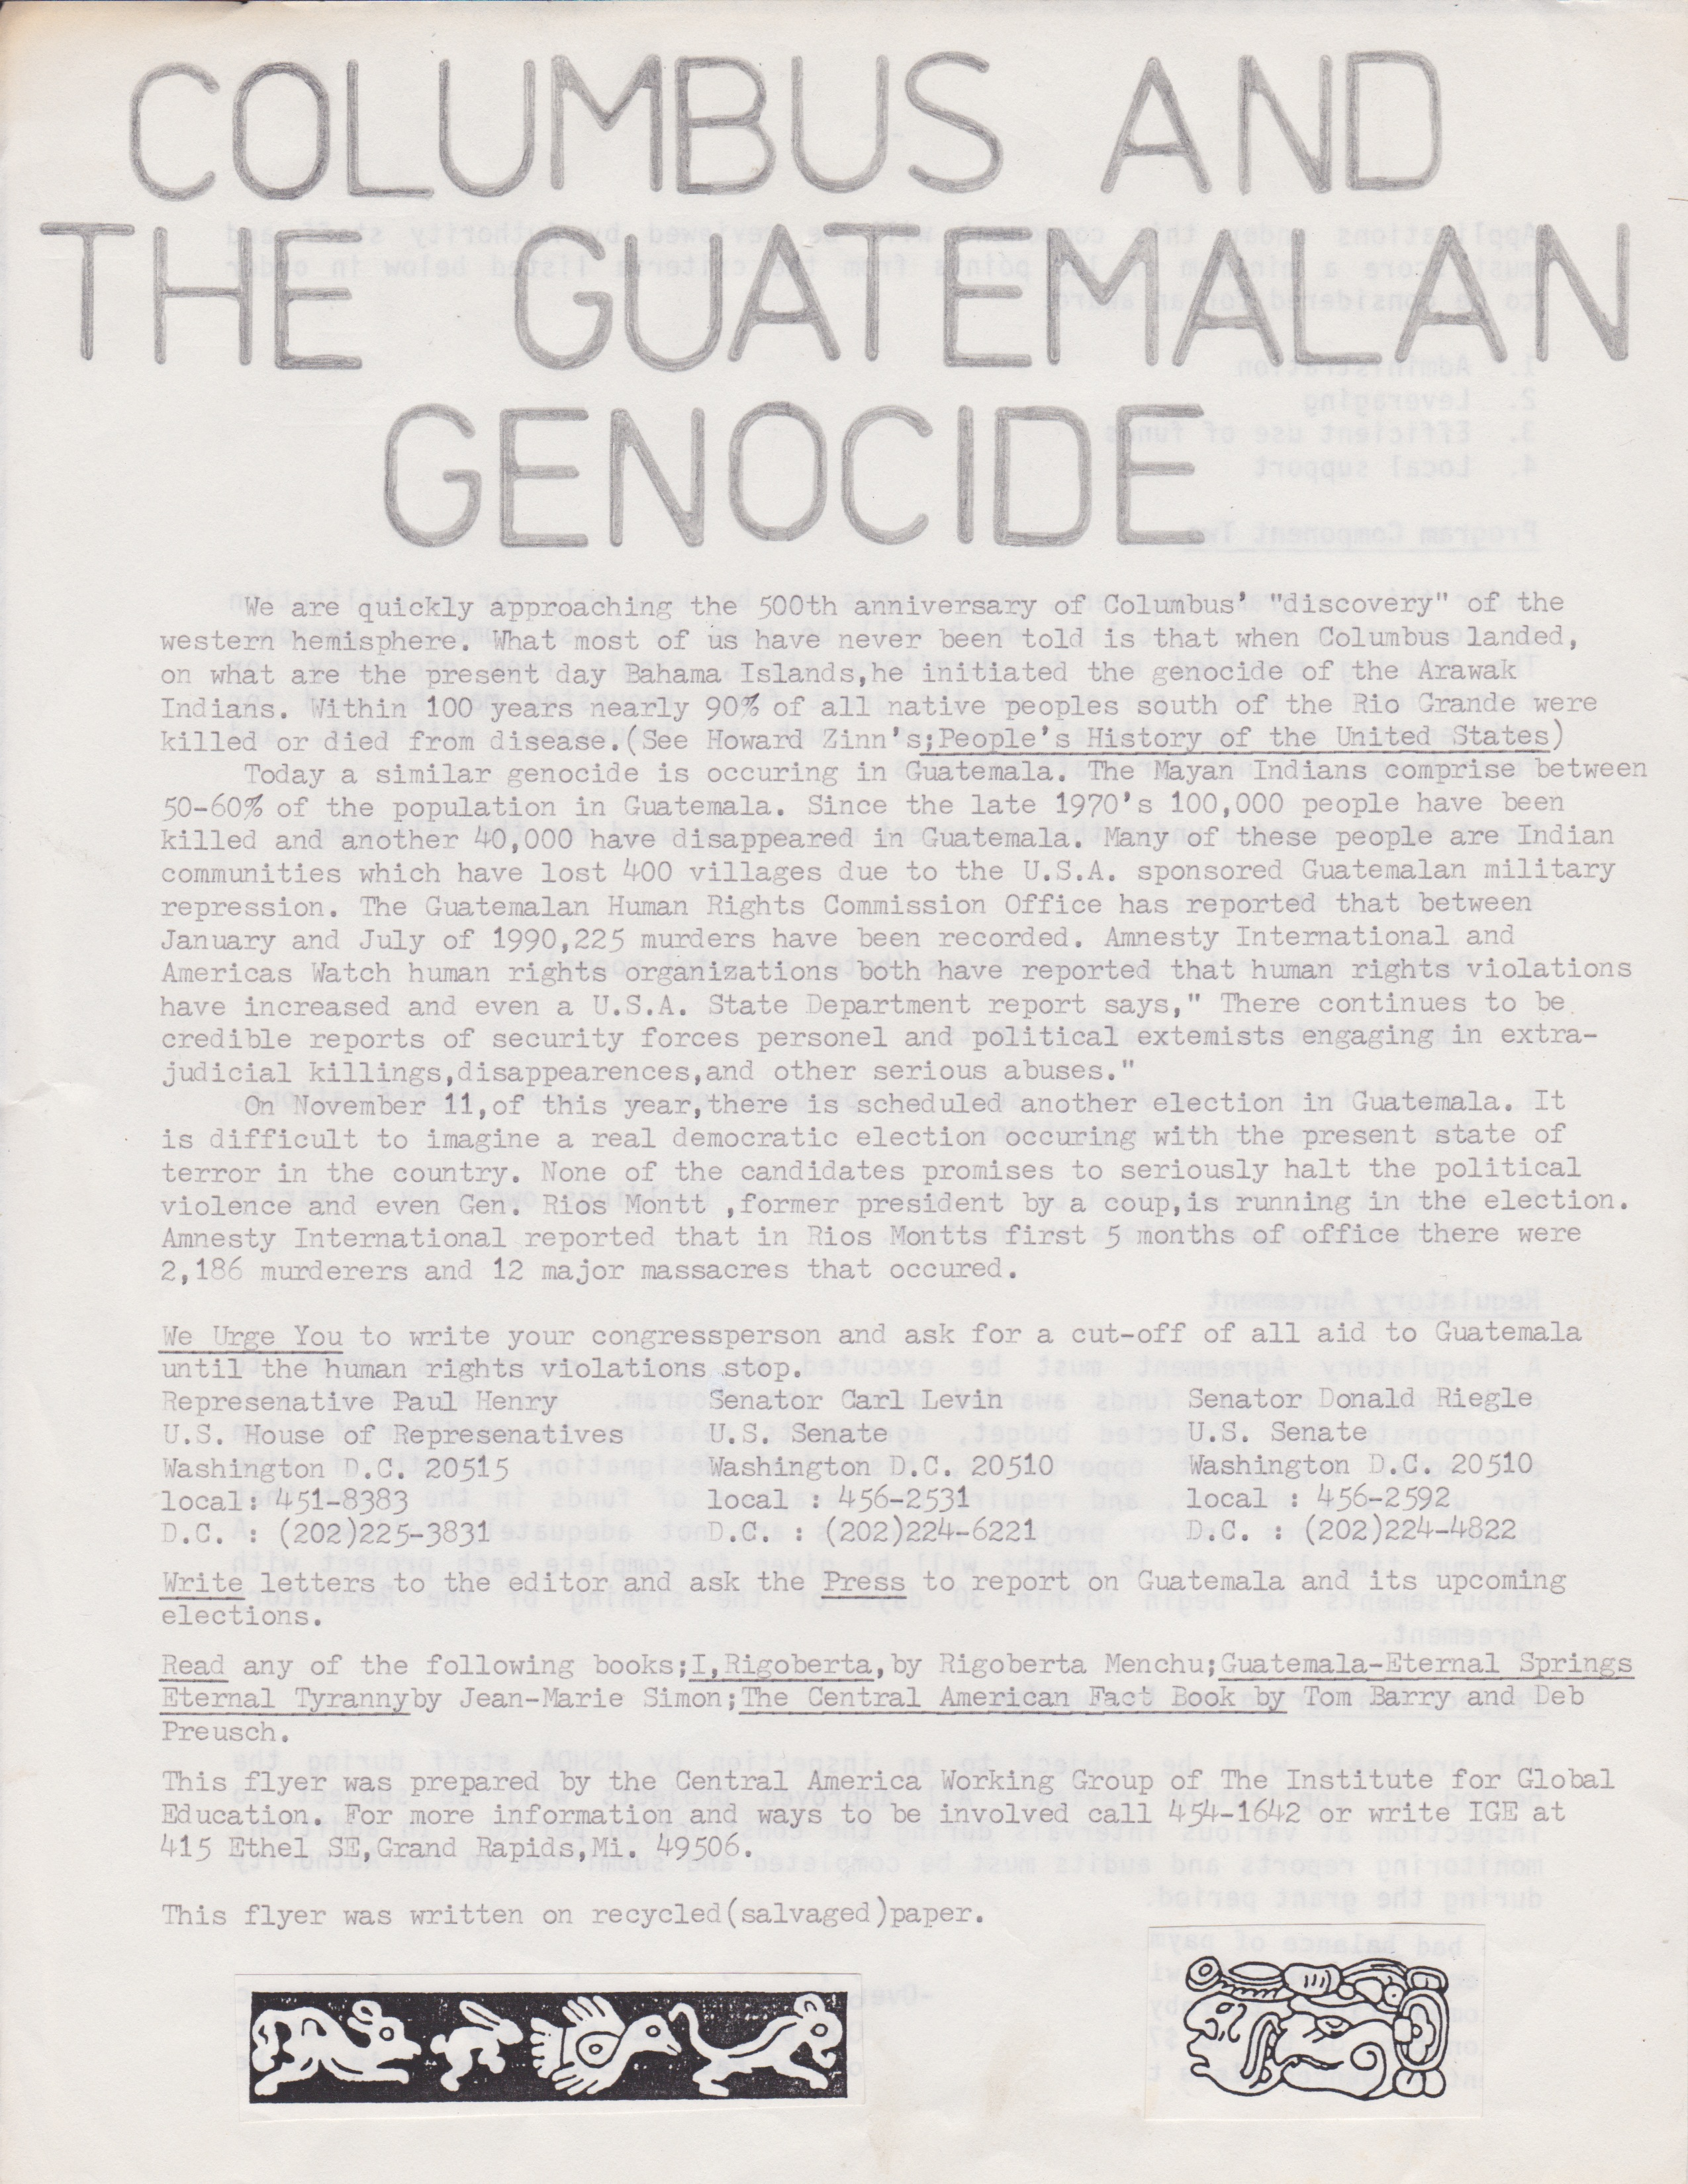 GR Central American Solidarity flyer connects Guatemalan Genocide to ...